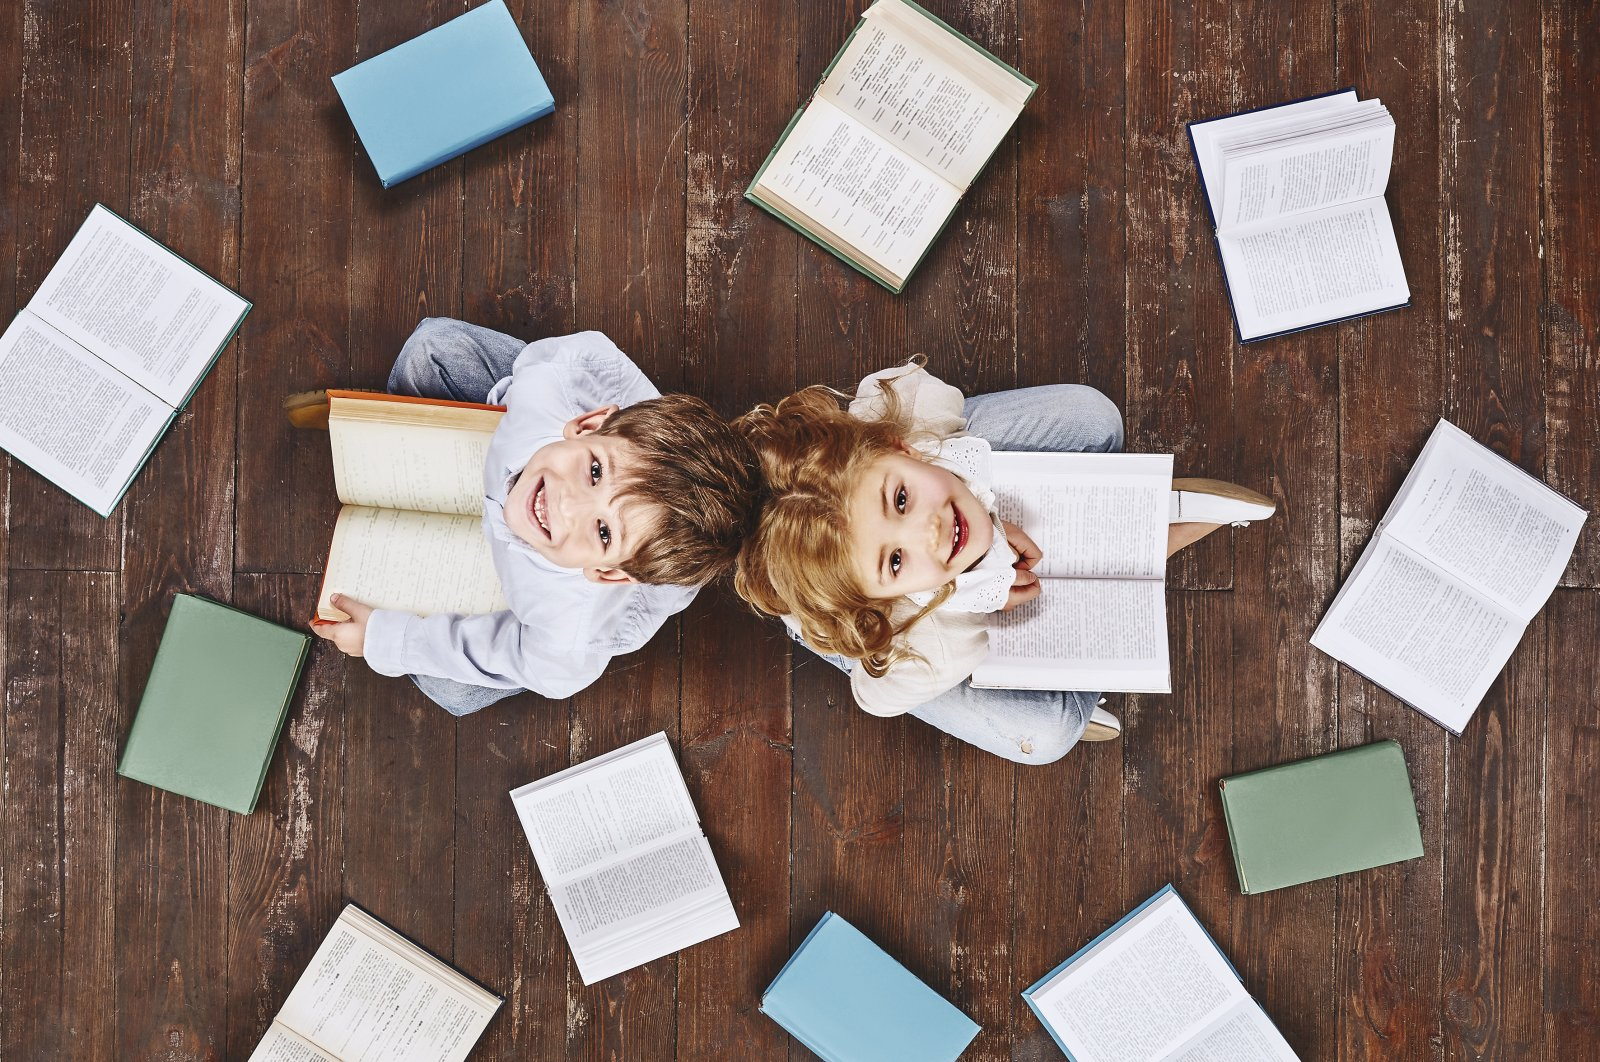 Especially the millennials have been putting up a great effort on practicing reading habits.(iStock Photo)